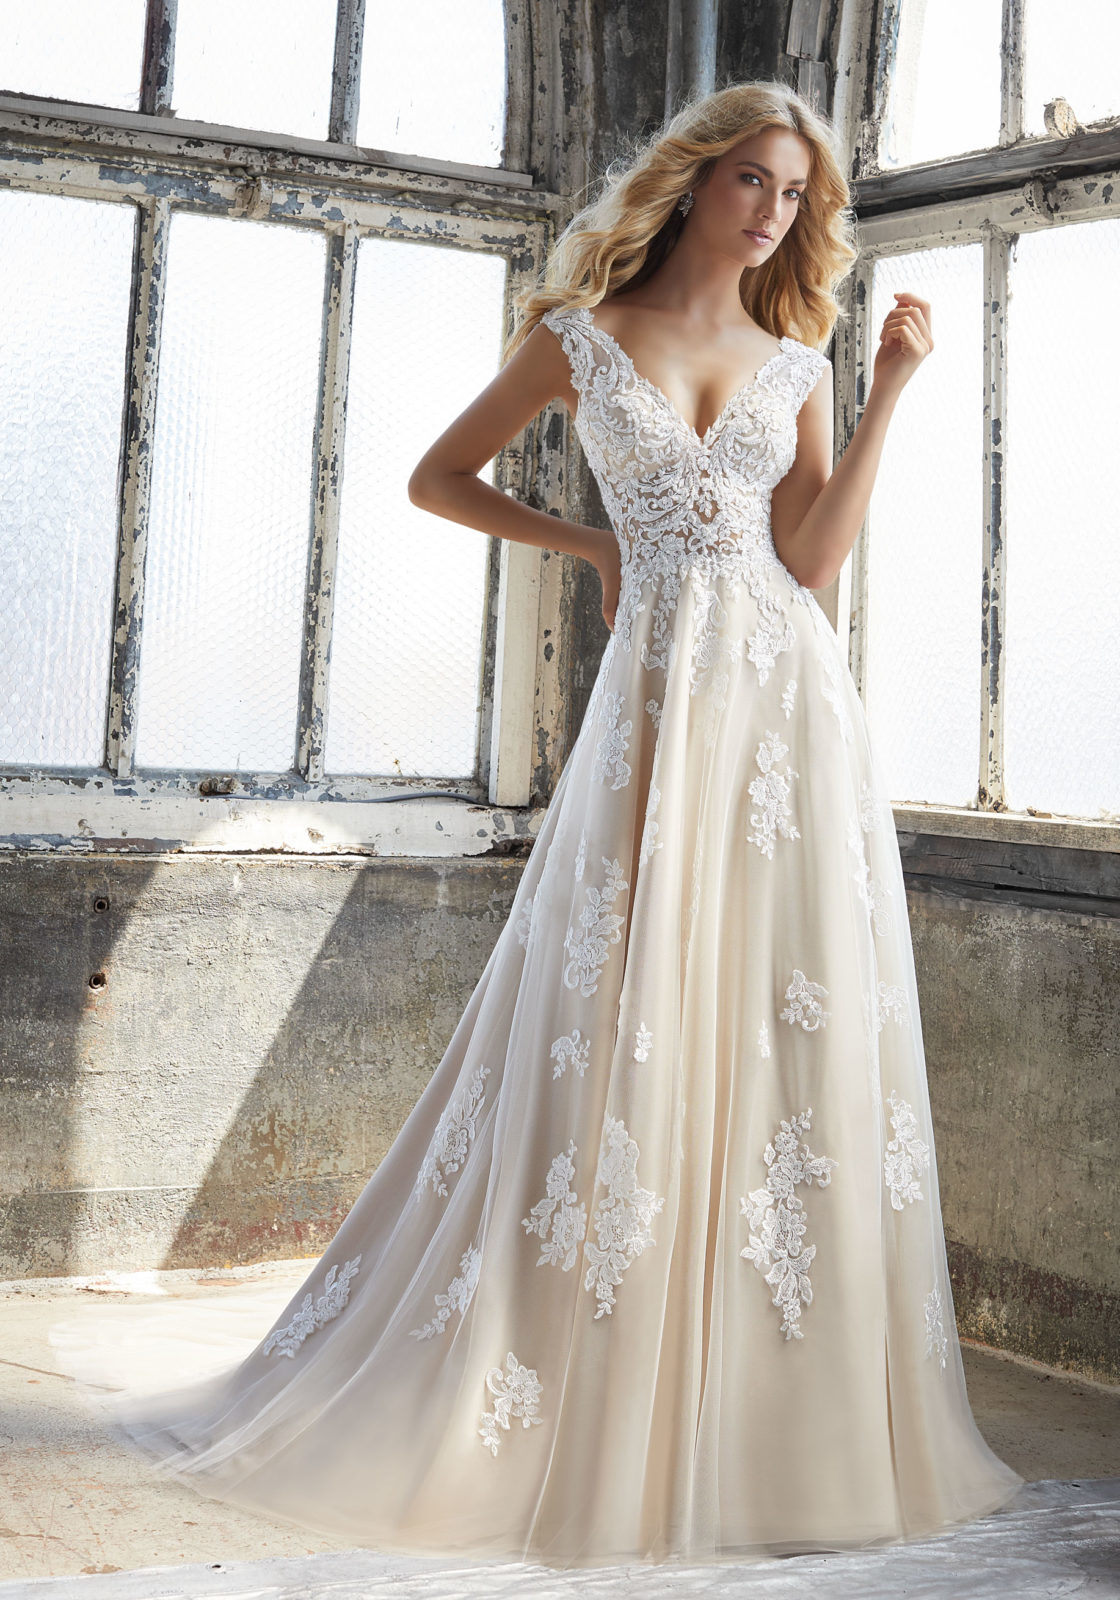 China Tulle Appliqued Bridal Gown Cream Lace Beach Traveling Garden ...